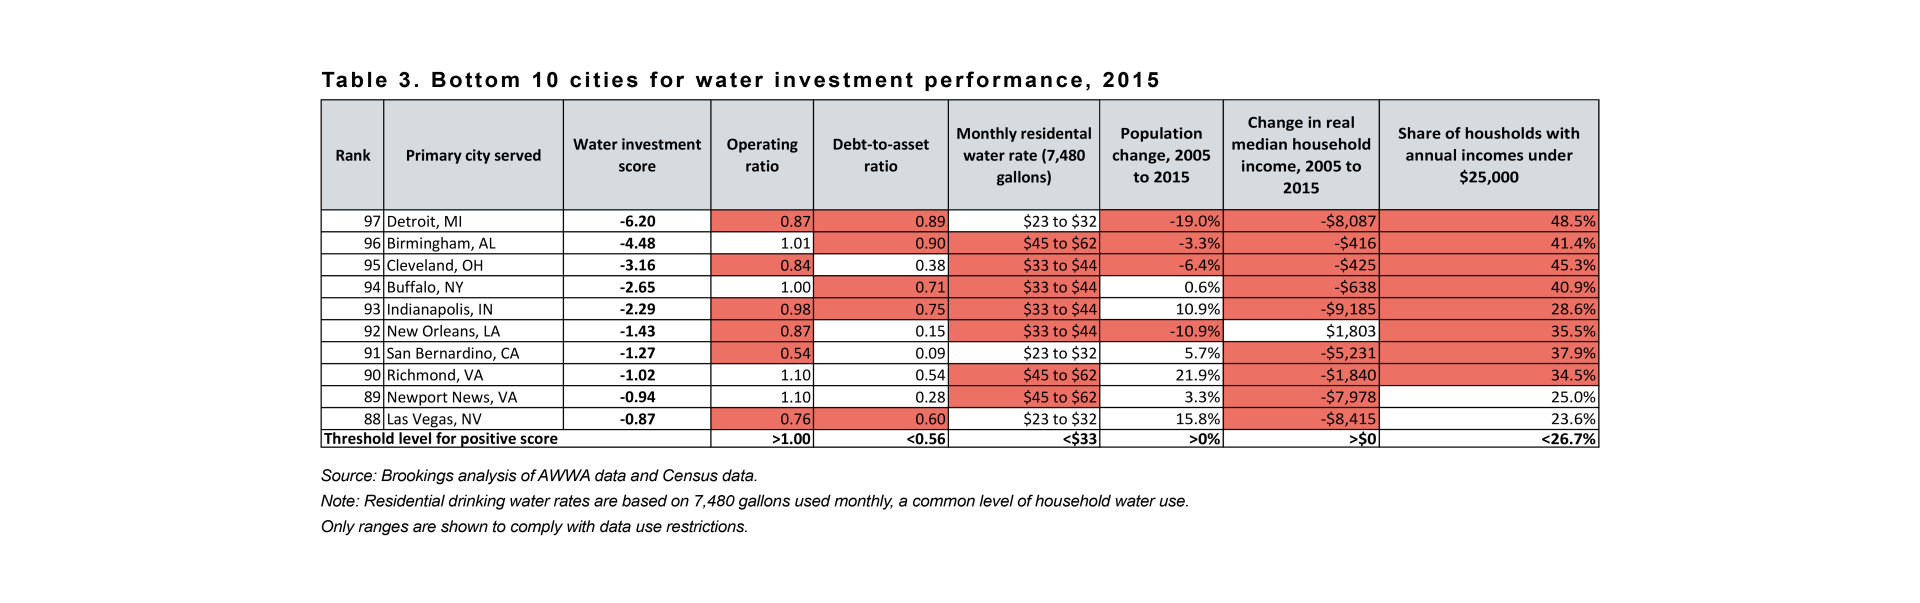 metro_20161213_waterinvestbrief_table 3-1